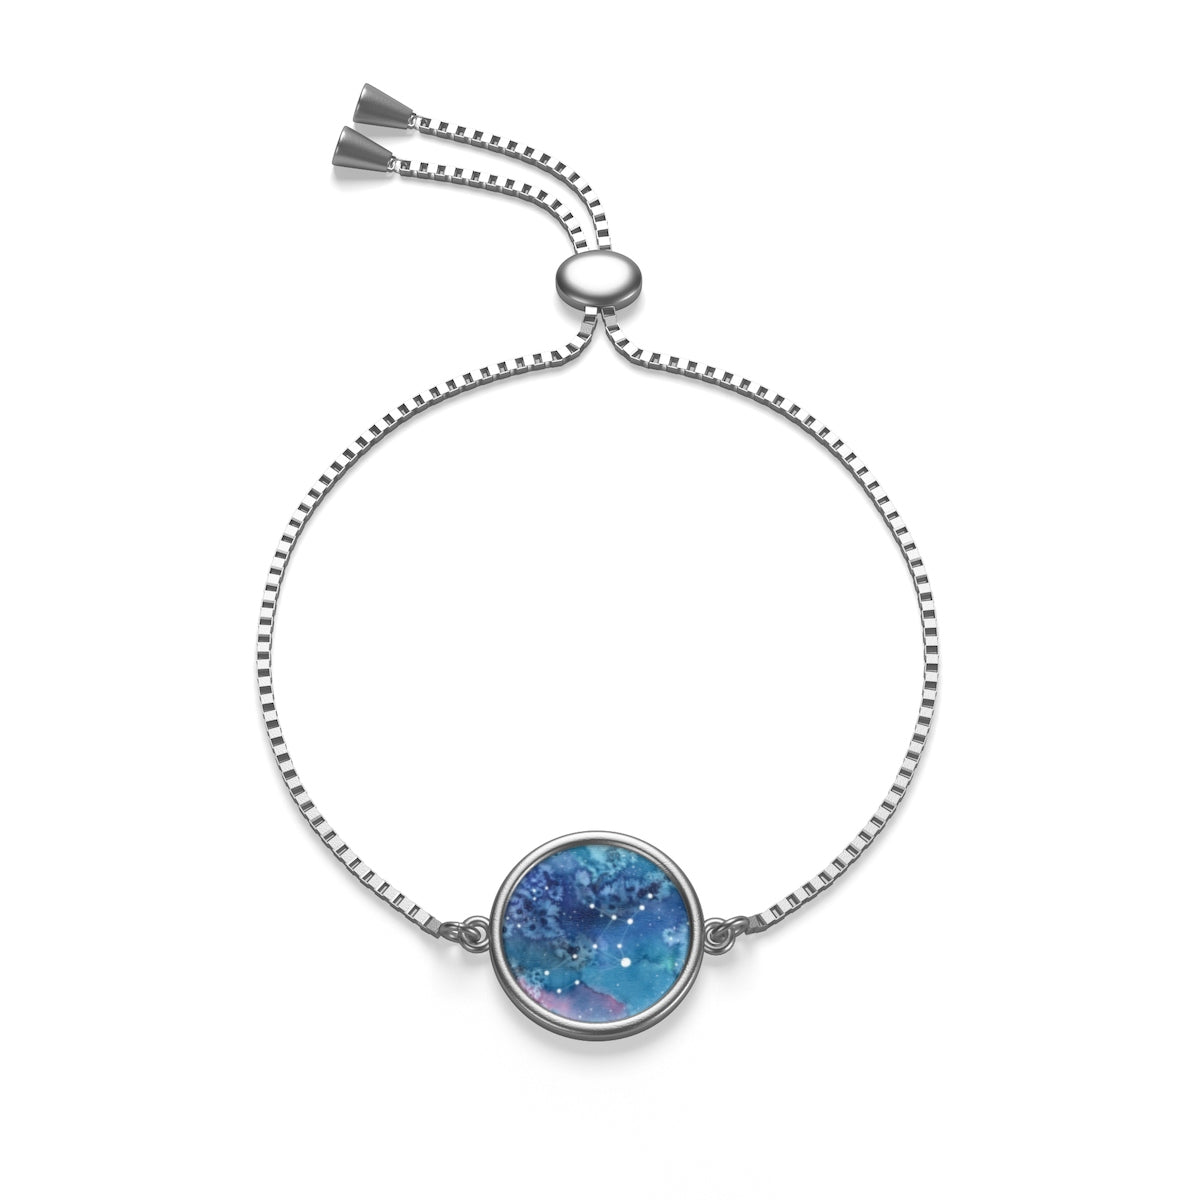 Virgo Box Chain Bracelet, Accessories - Gravitational Pull Art